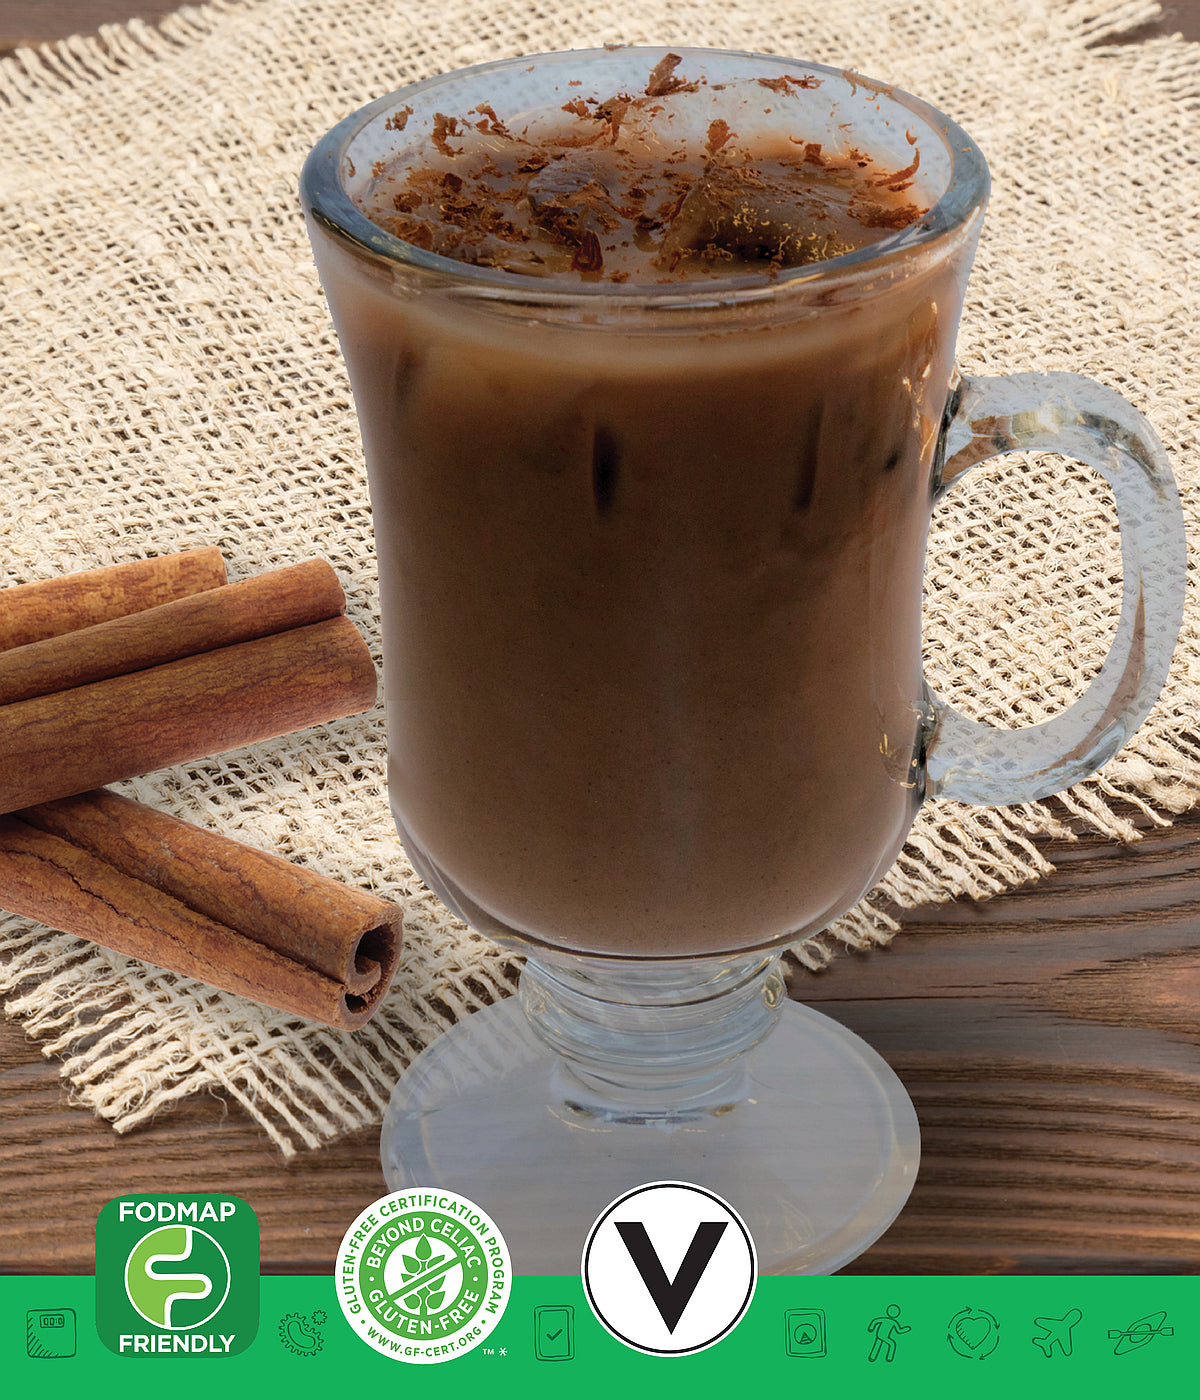 MSPrebiotic® (FODMAP Friendly) Chocolate Horchata